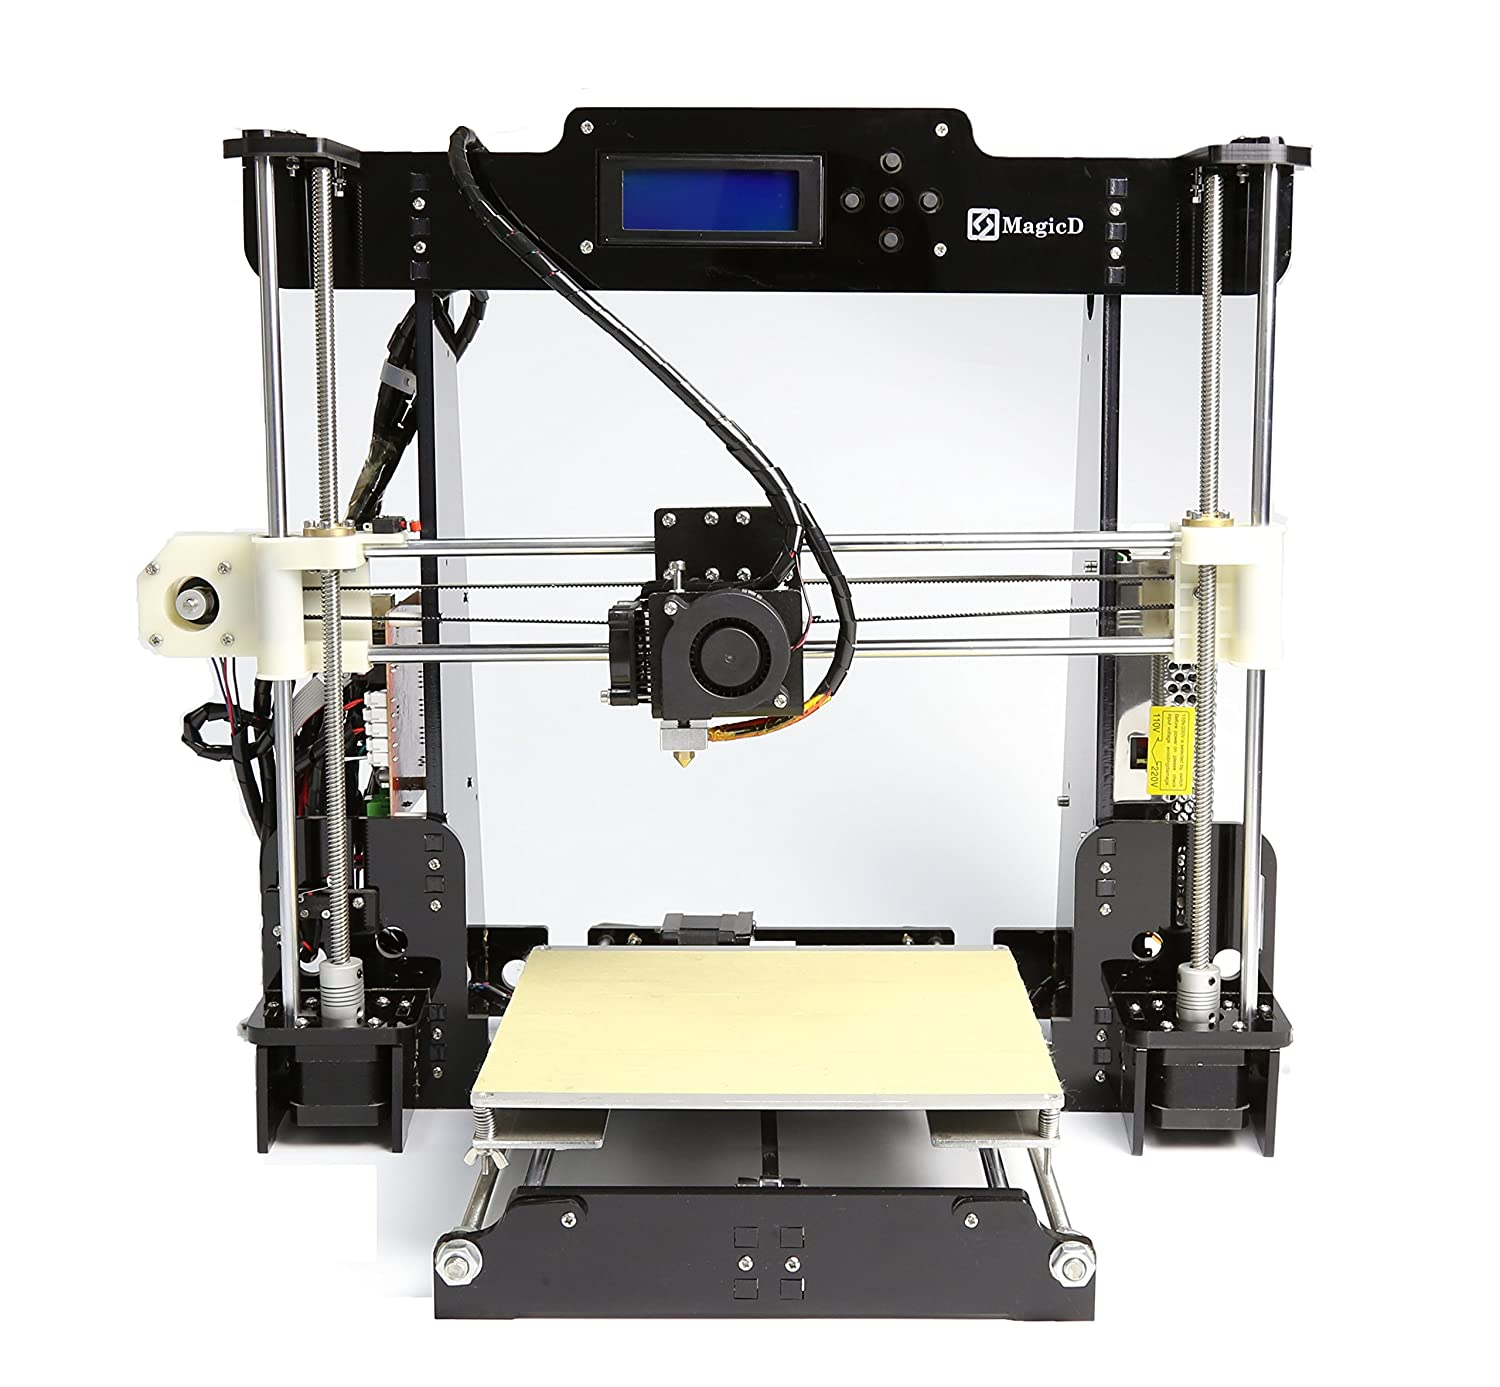 MZEDE High Performance Anet A8 RepRap 3D Printer DIY Kit, Classic A8 RepRap 3D Printer, Desktop 3D Printer, Print PLA, ABS Filament, Easy To Assemble,UK Standard Plug.